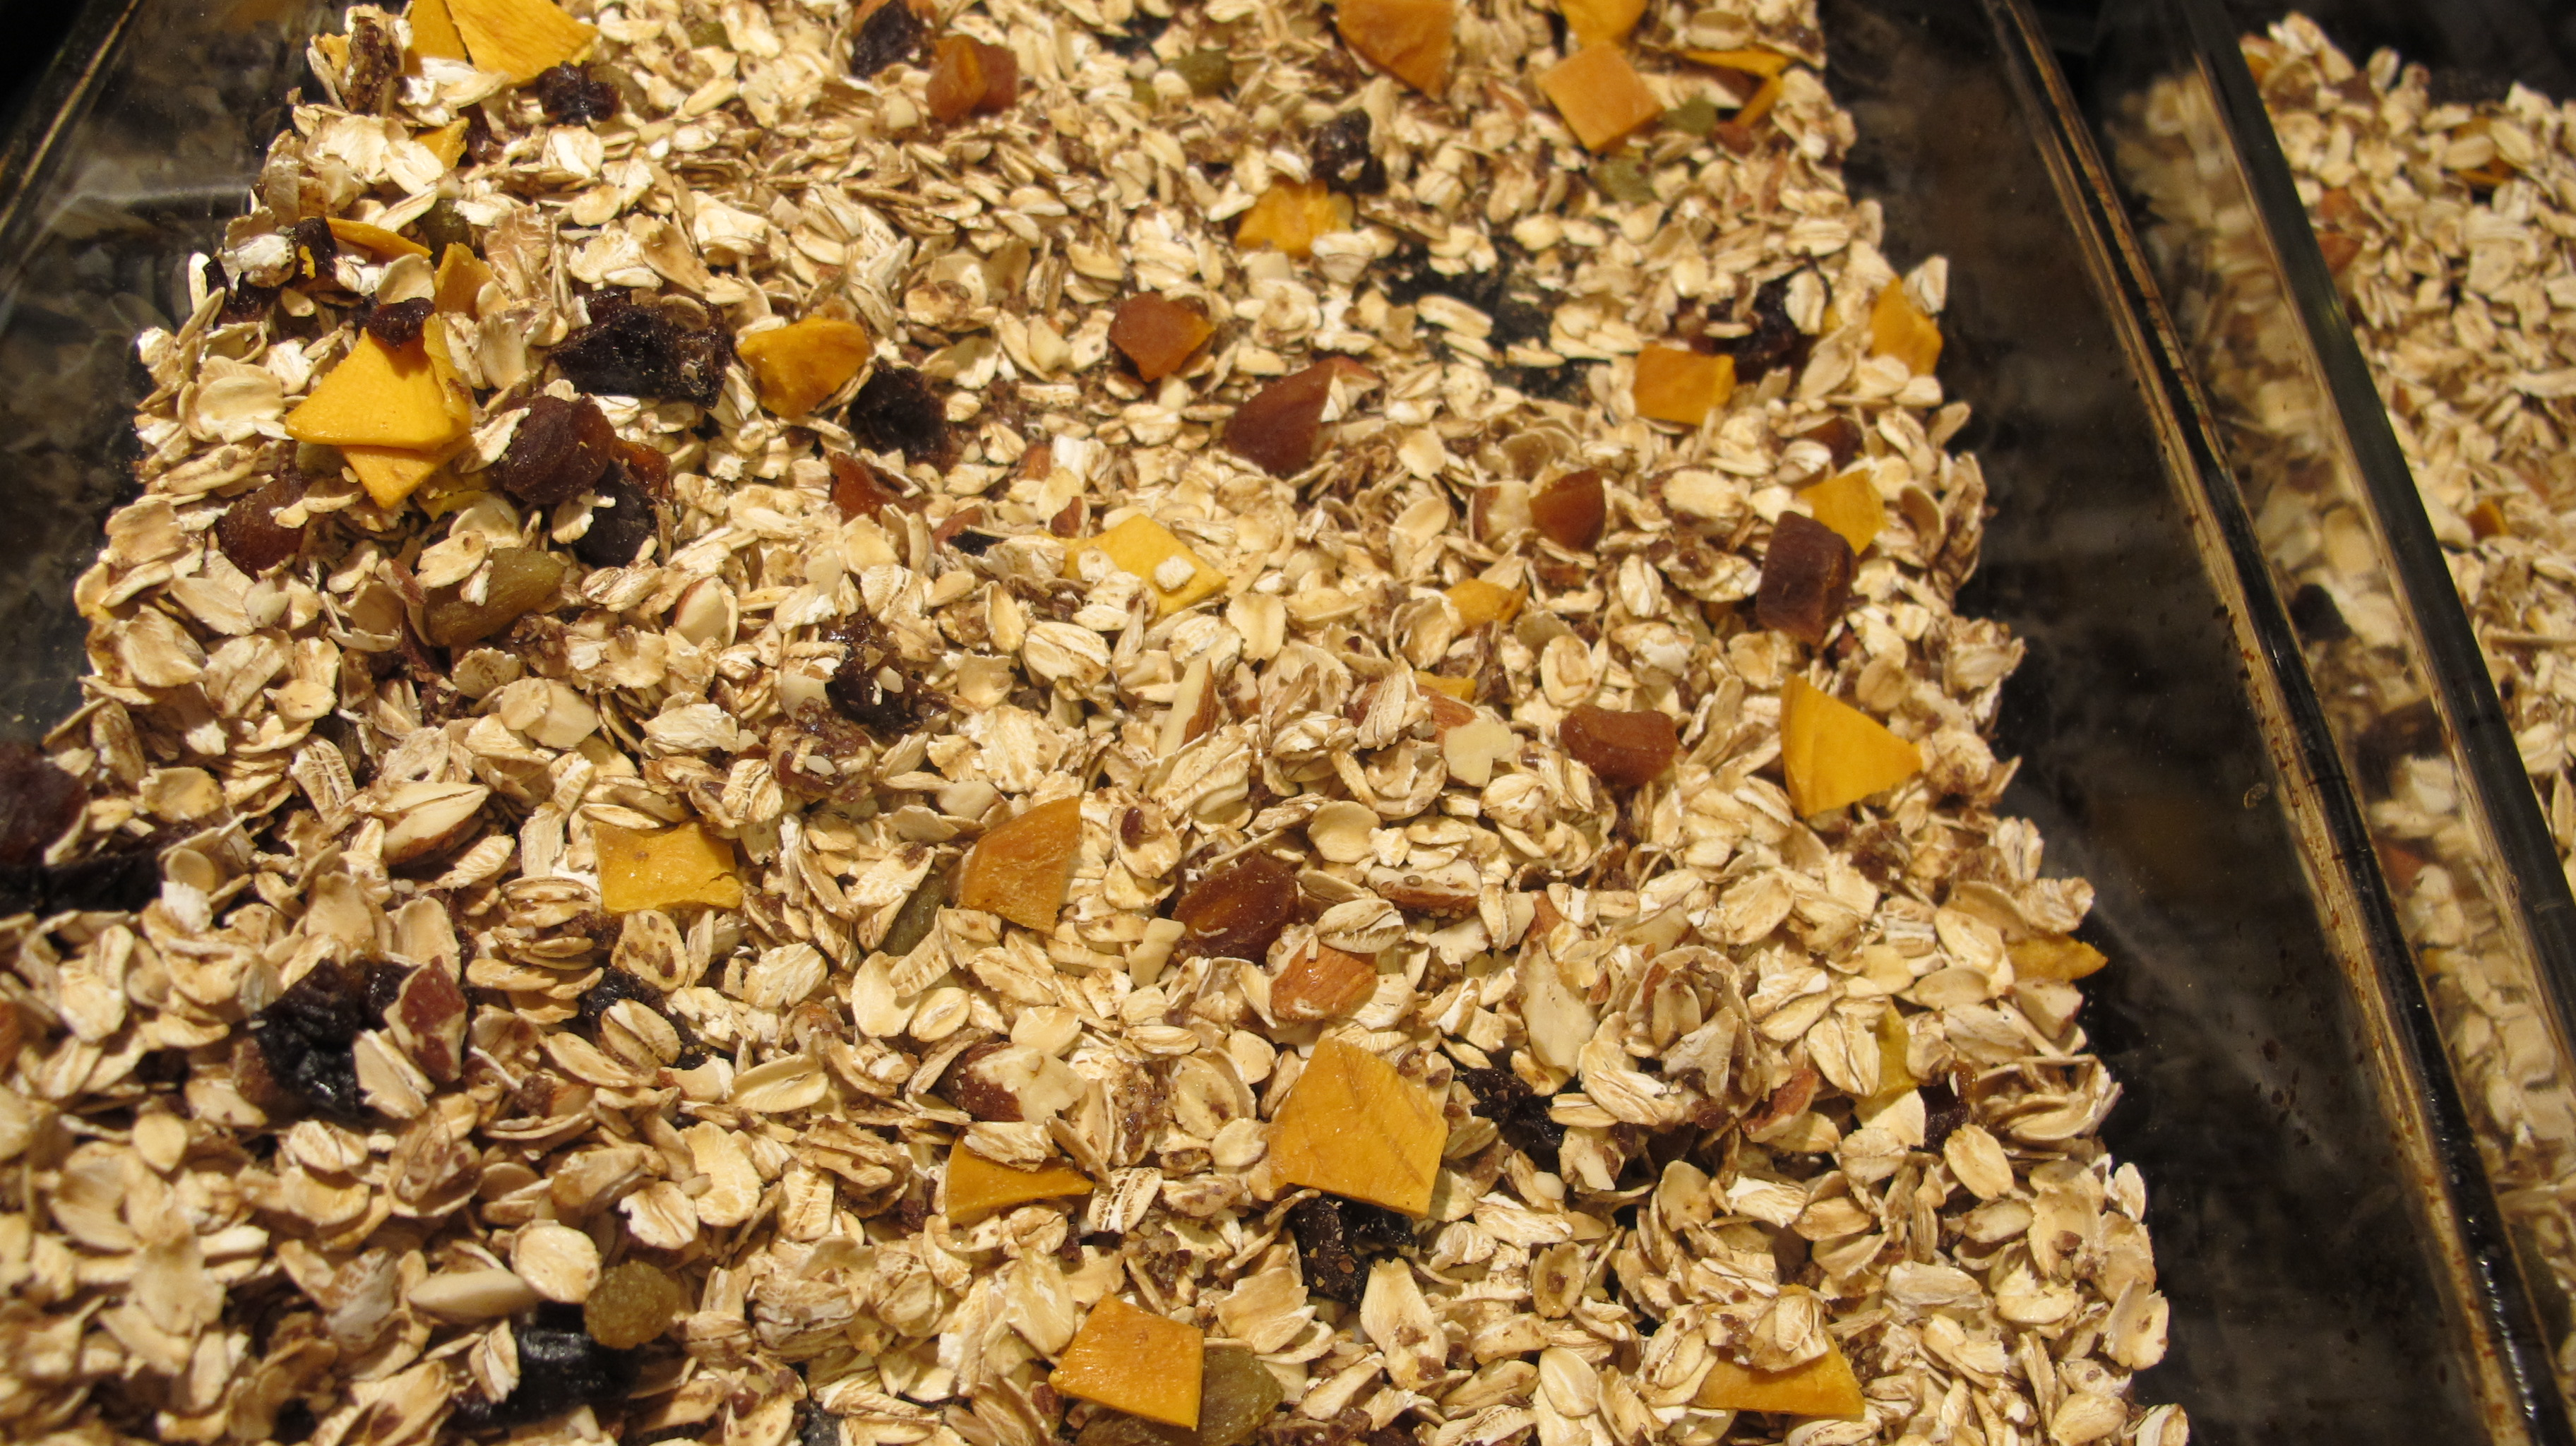 The muesli is ready.